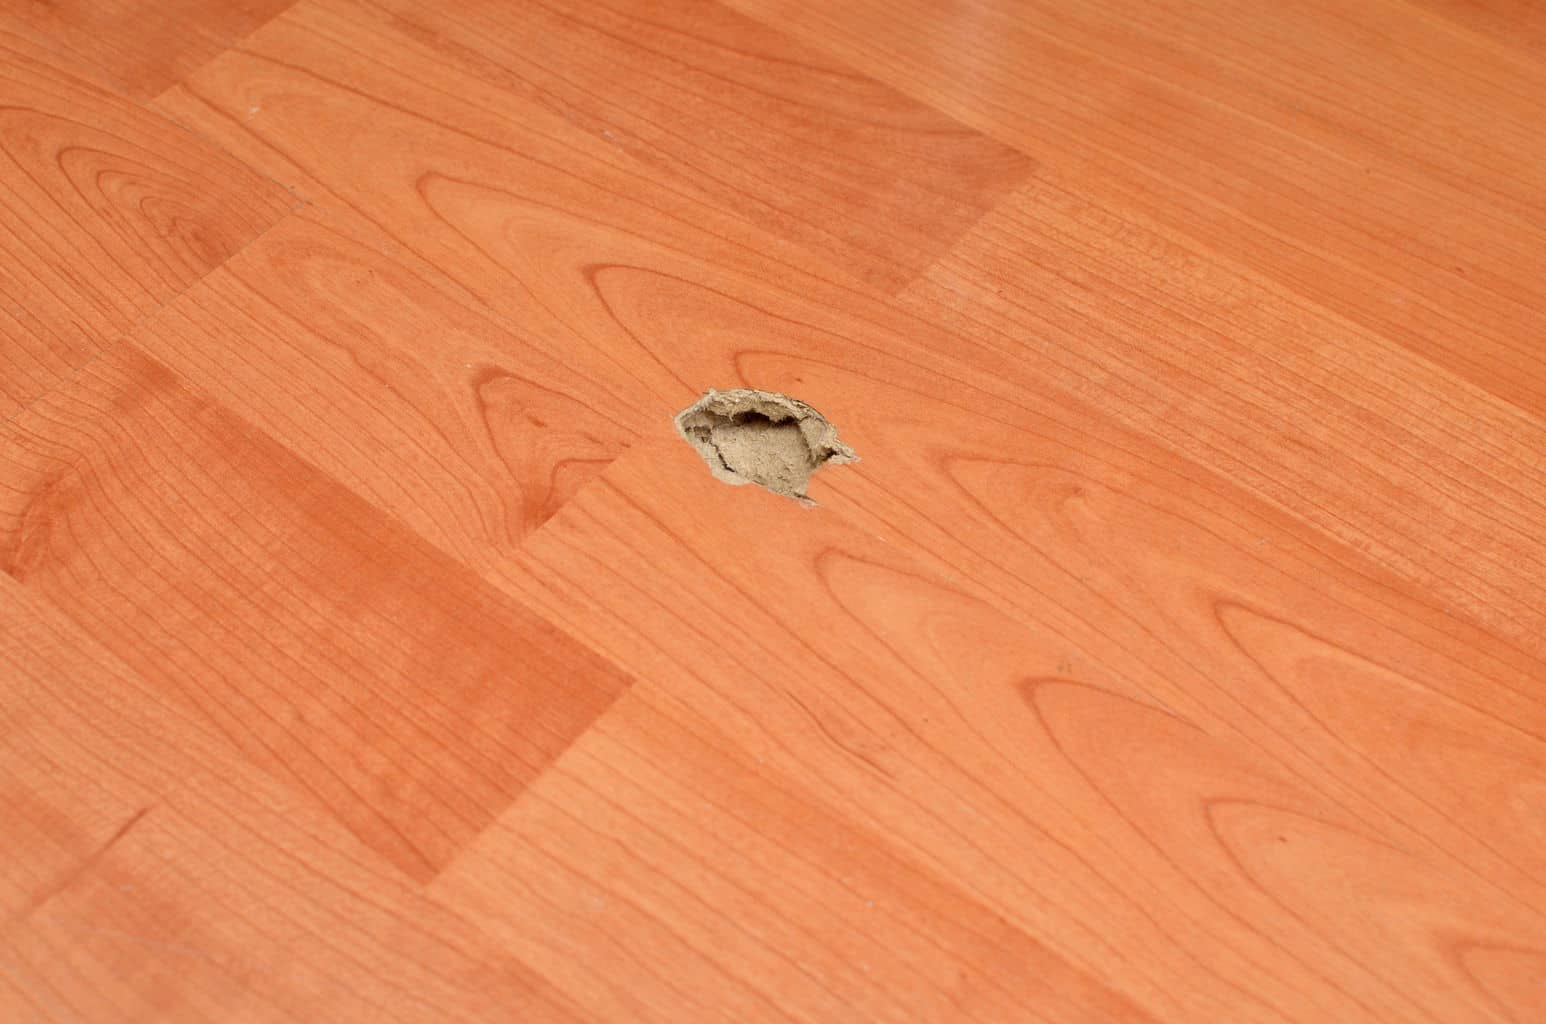 How To Remove Water Stains From Laminate Flooring